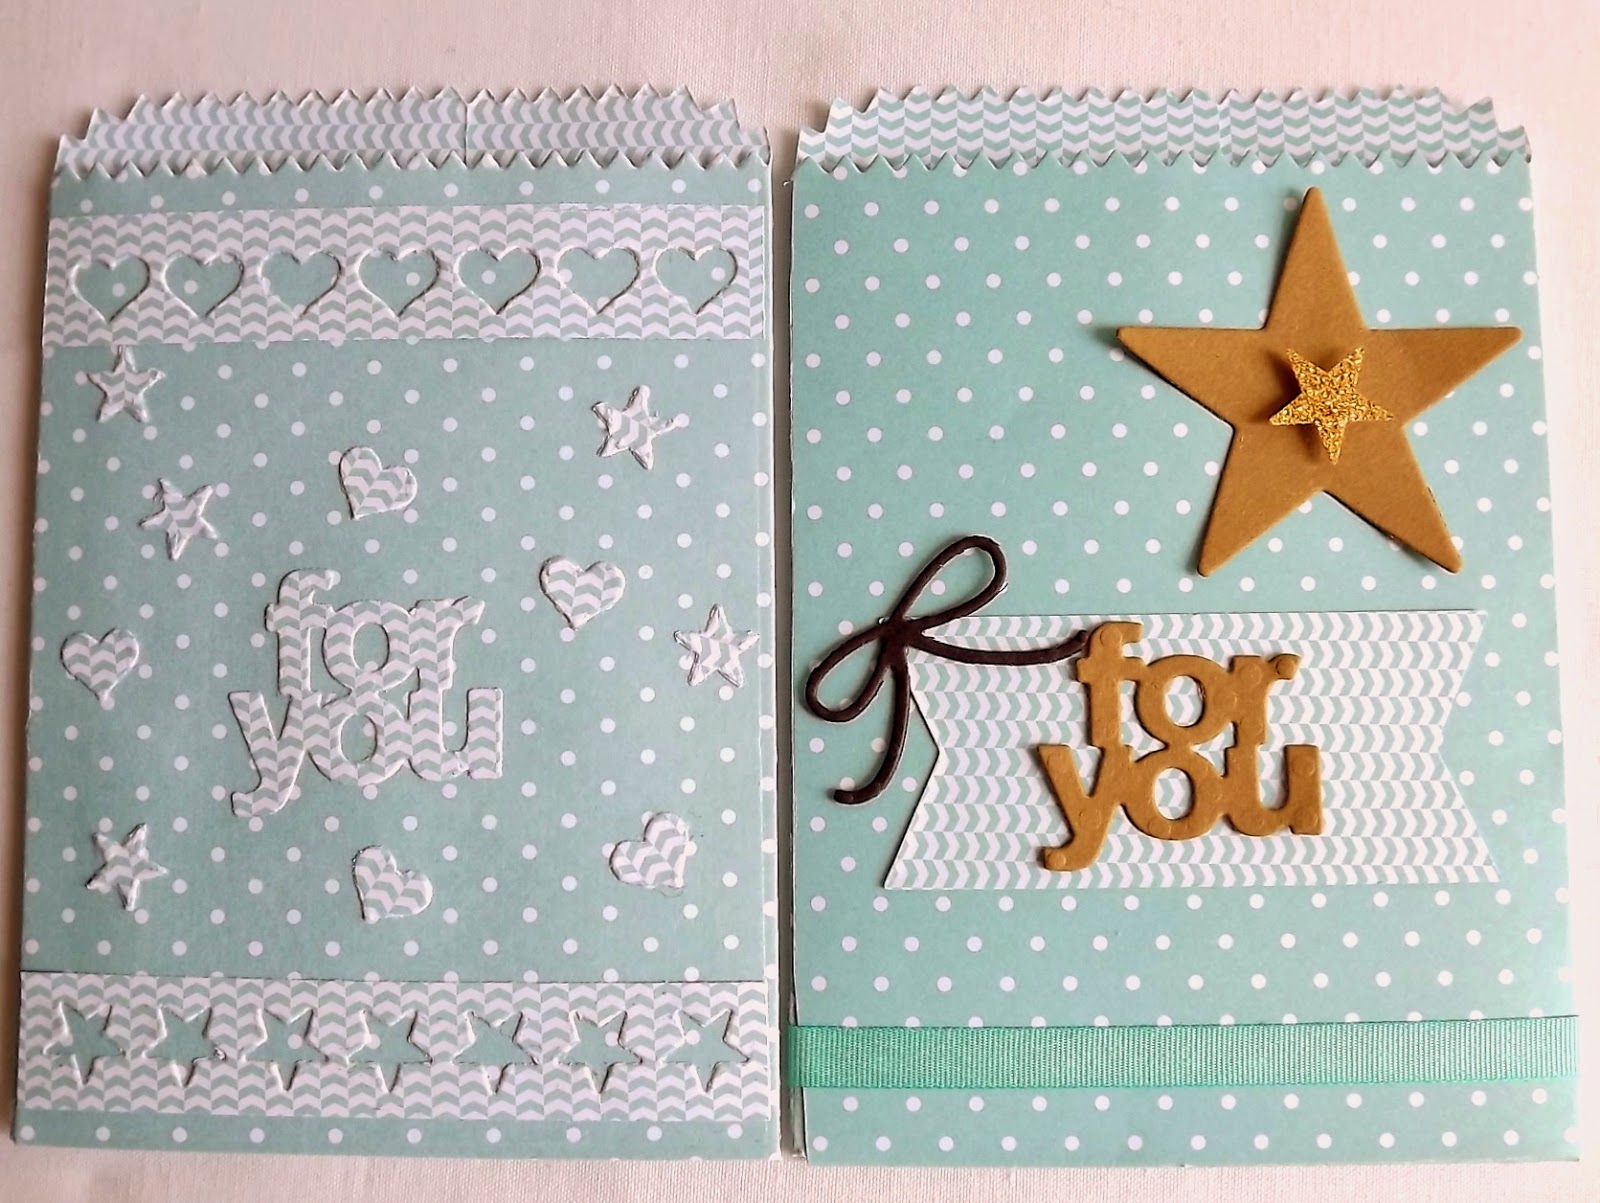 Stampin Up! mini treat bags, soft sky, pool party dsp